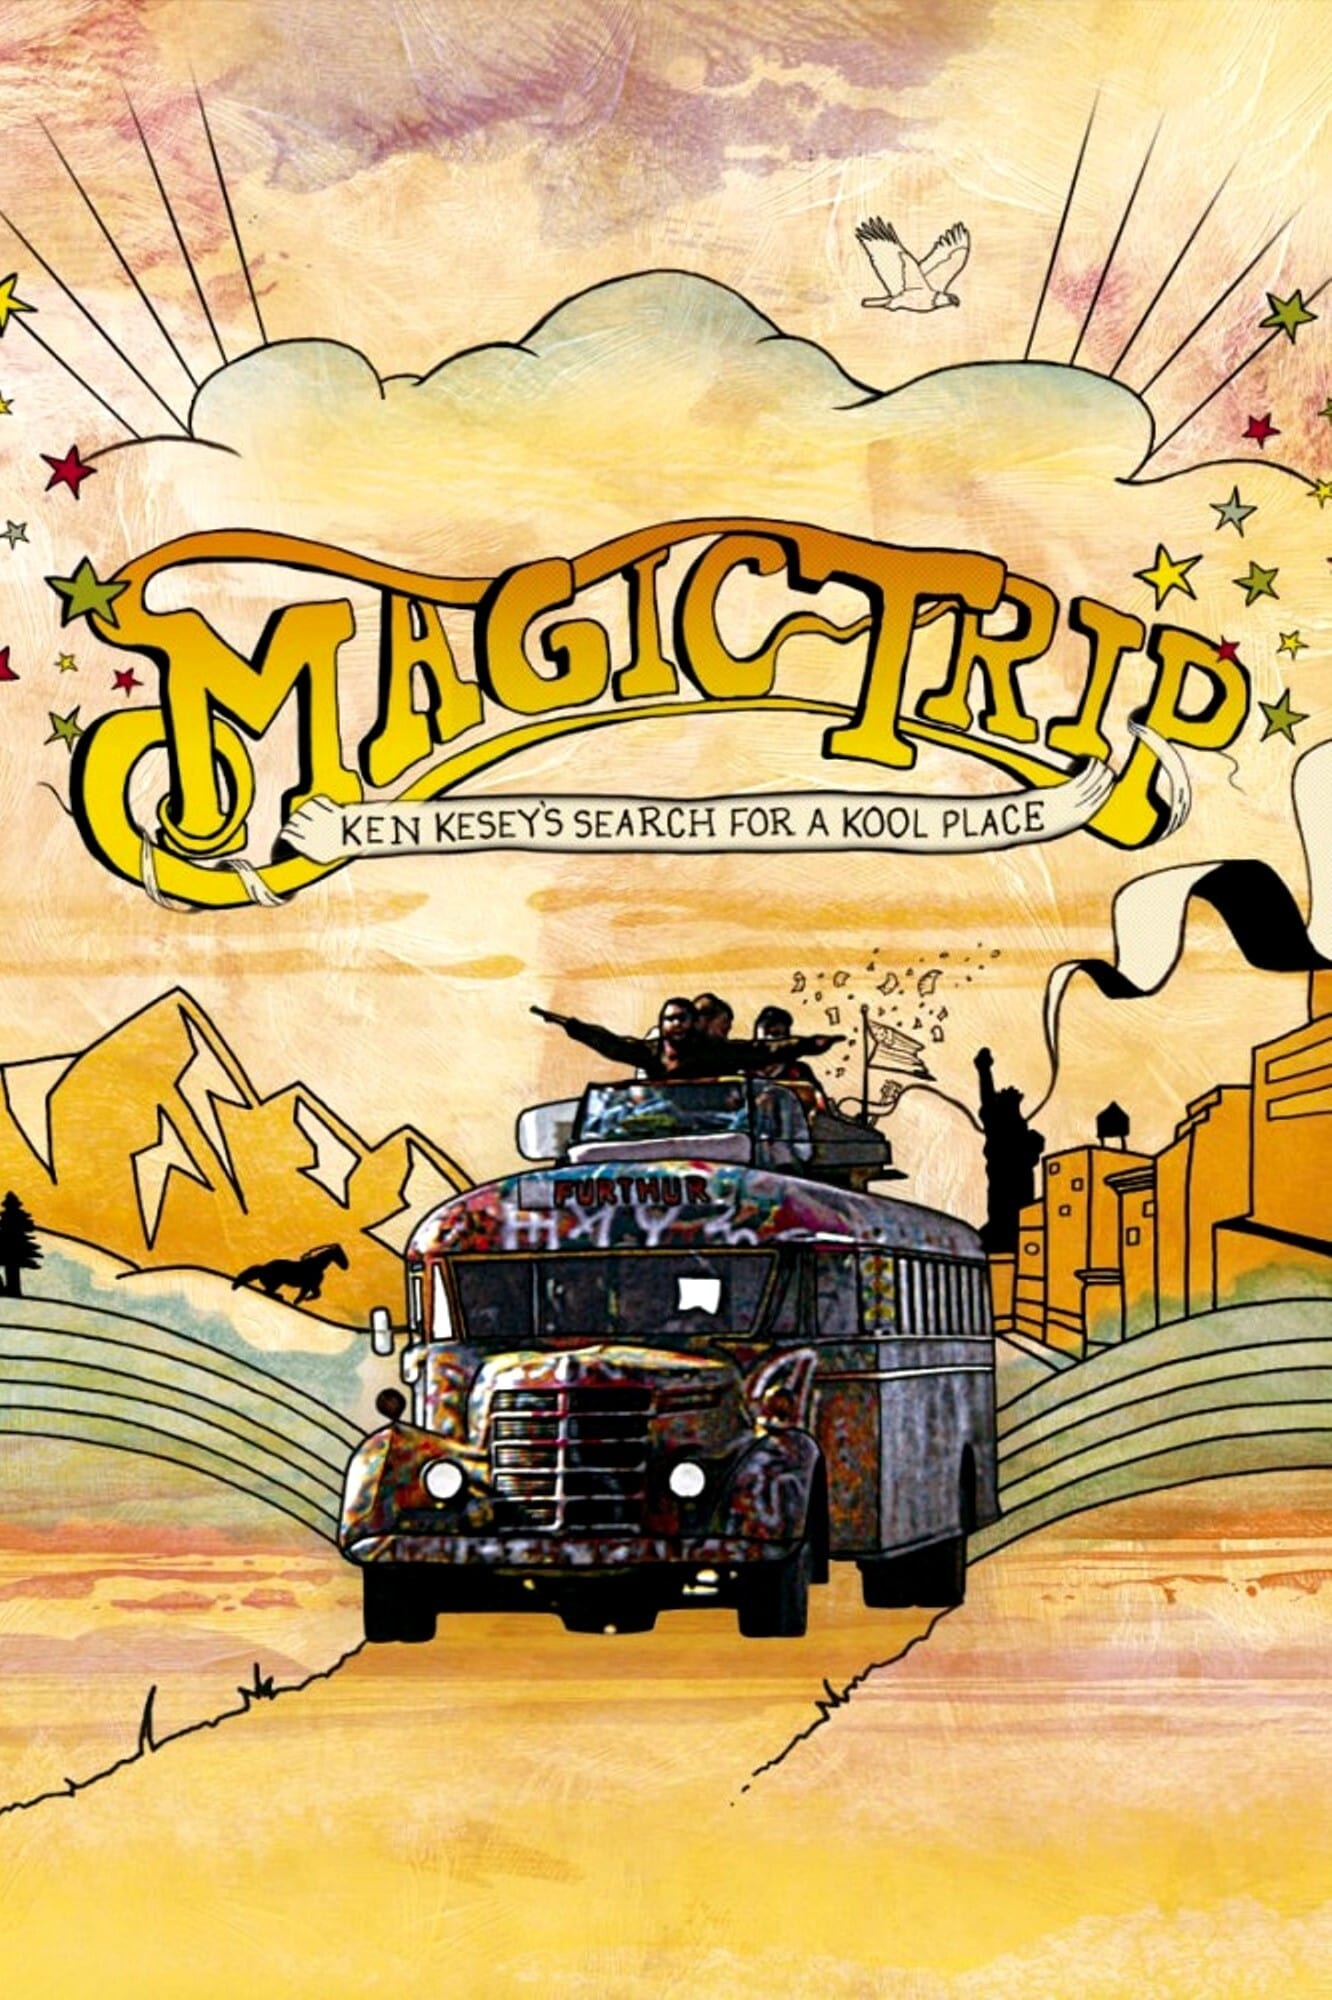 Magic Trip: Ken Kesey's Search for a Kool Place on FREECABLE TV